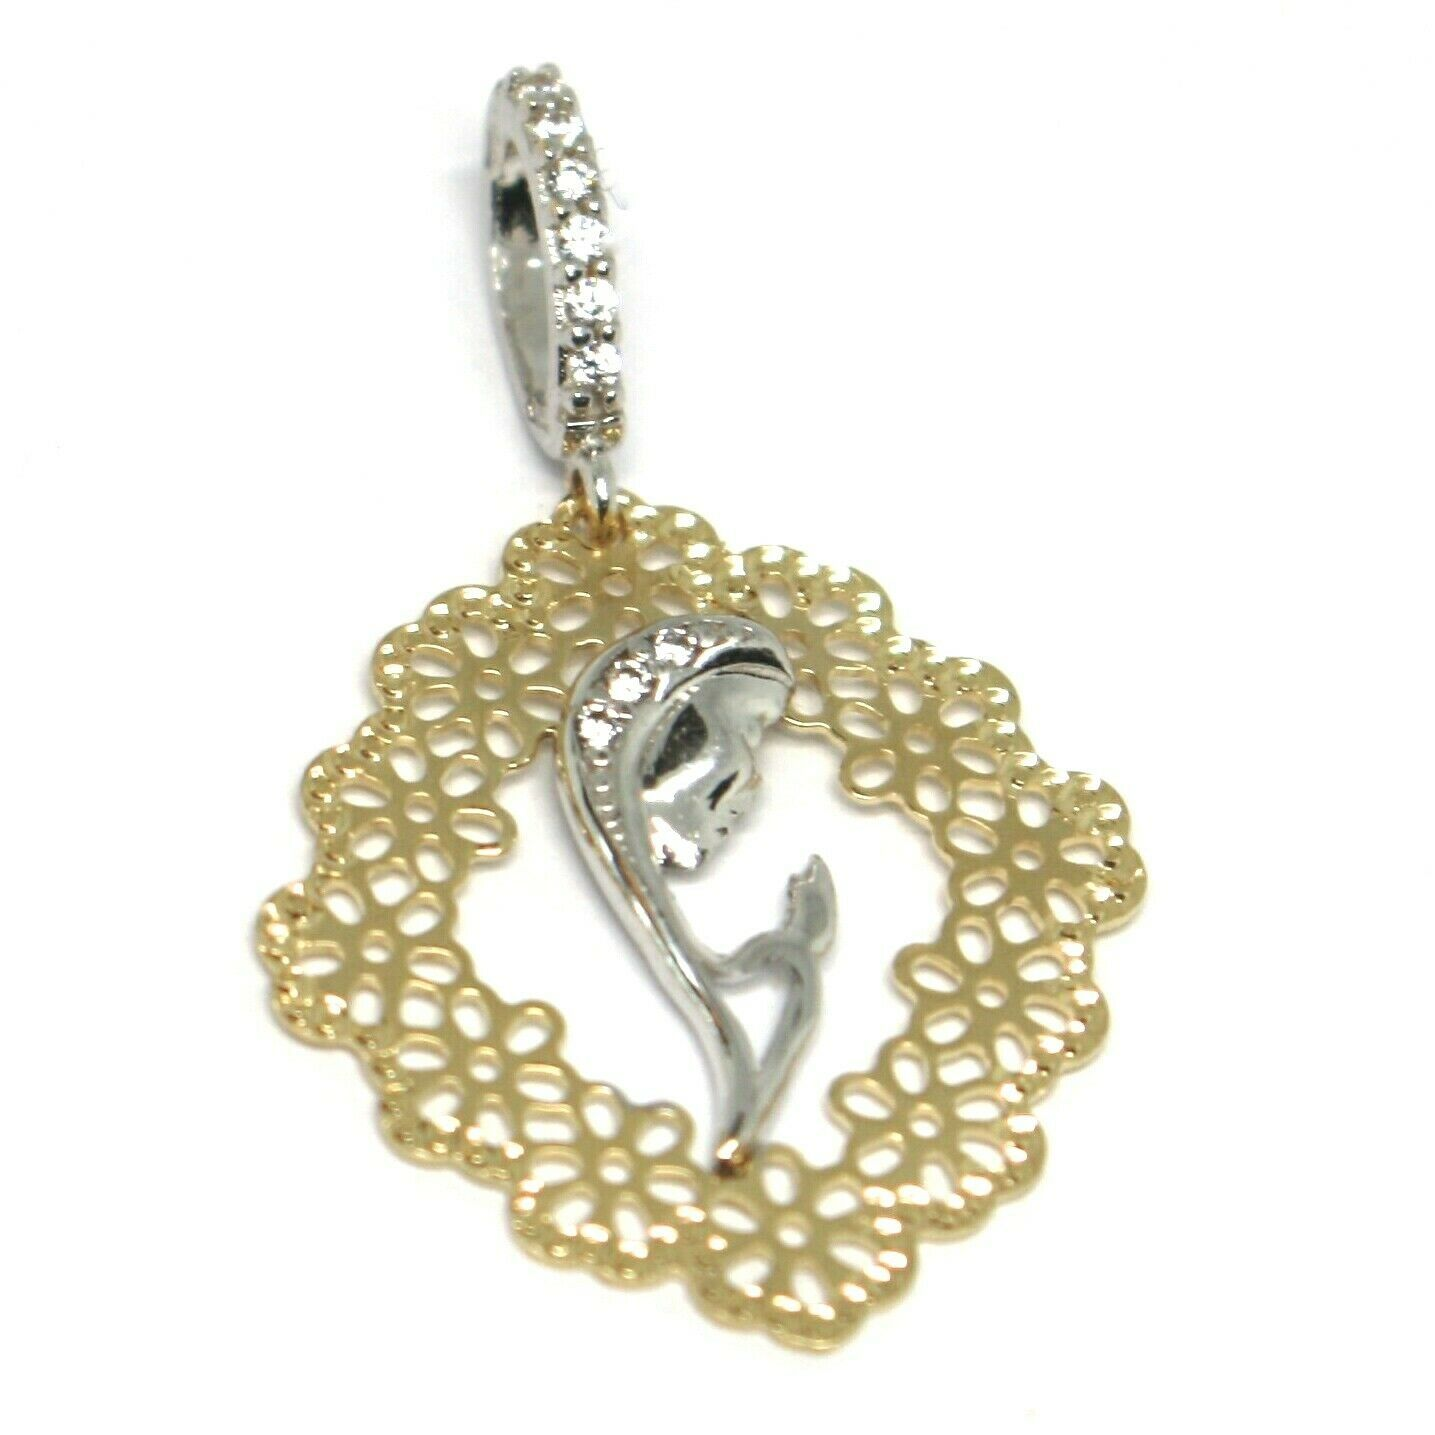 Pendant Medal, Yellow Gold White 750 18K, Virgo Mary Jane, with Frame, Flowers